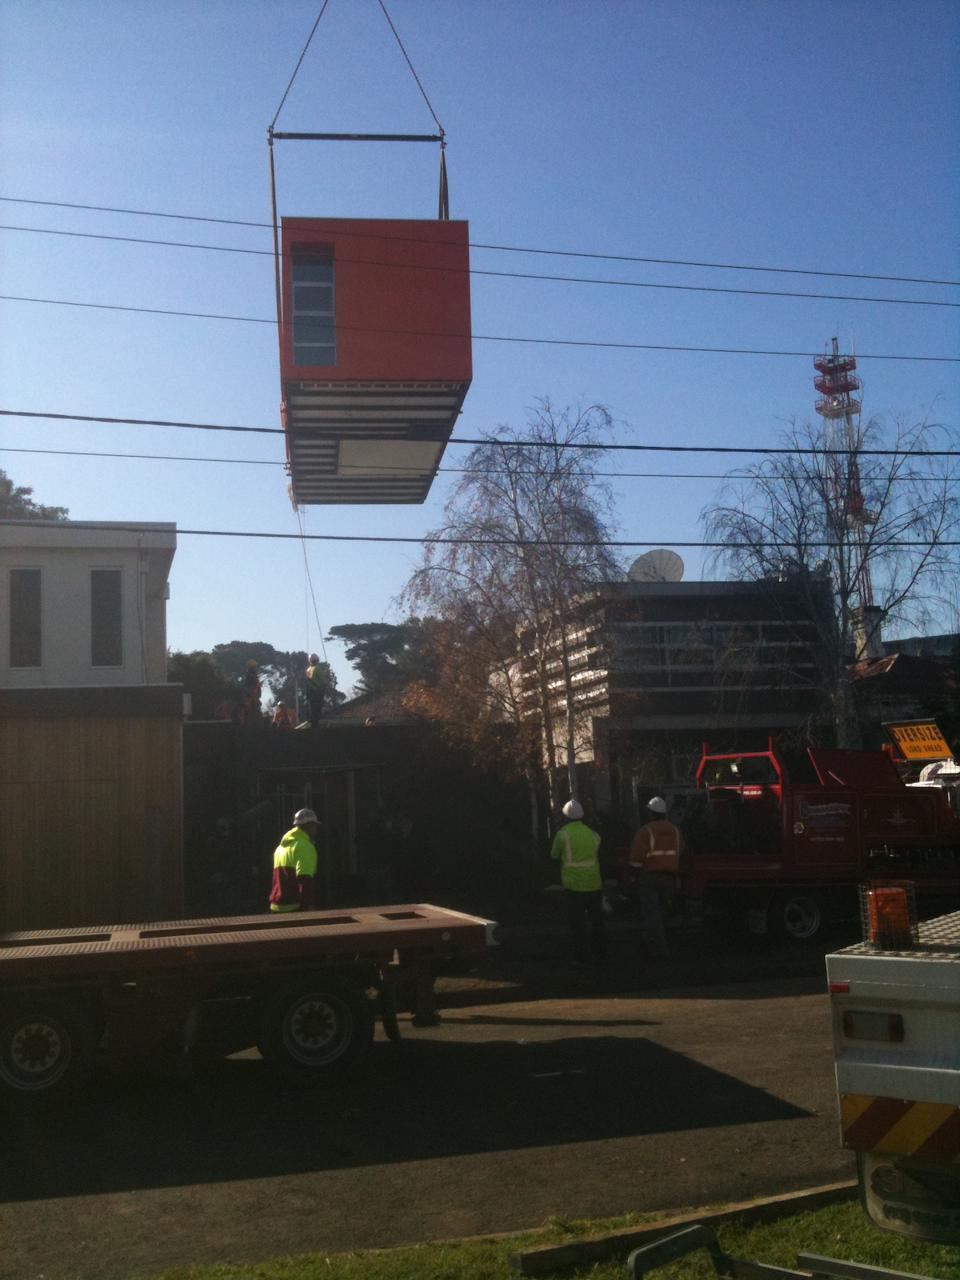 The module is carefully lifted high above the electrical wires.